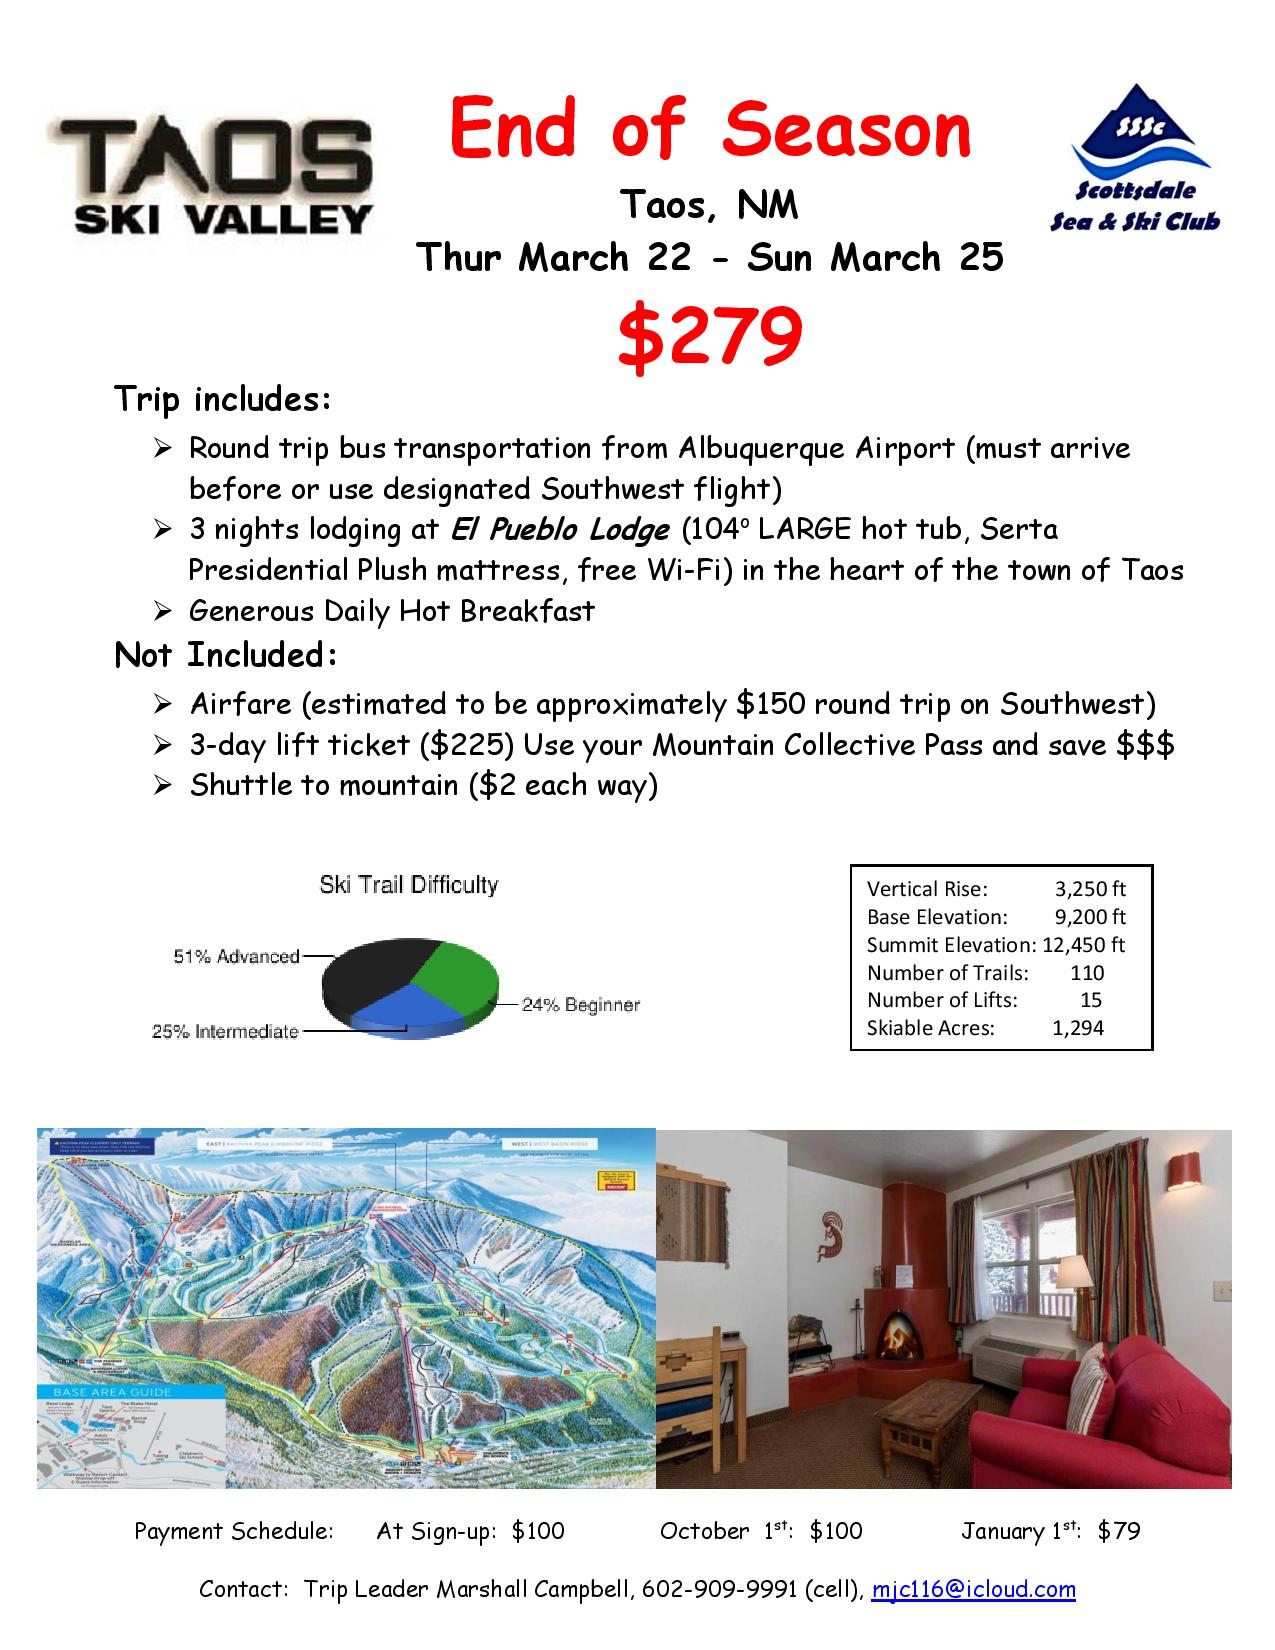 taos ski valley christian single women We customize ski & snowboard vacation packages to 120+ of the best ski resorts worldwide, including lodging, flights, ground transfers, lift tickets, lessons and more.